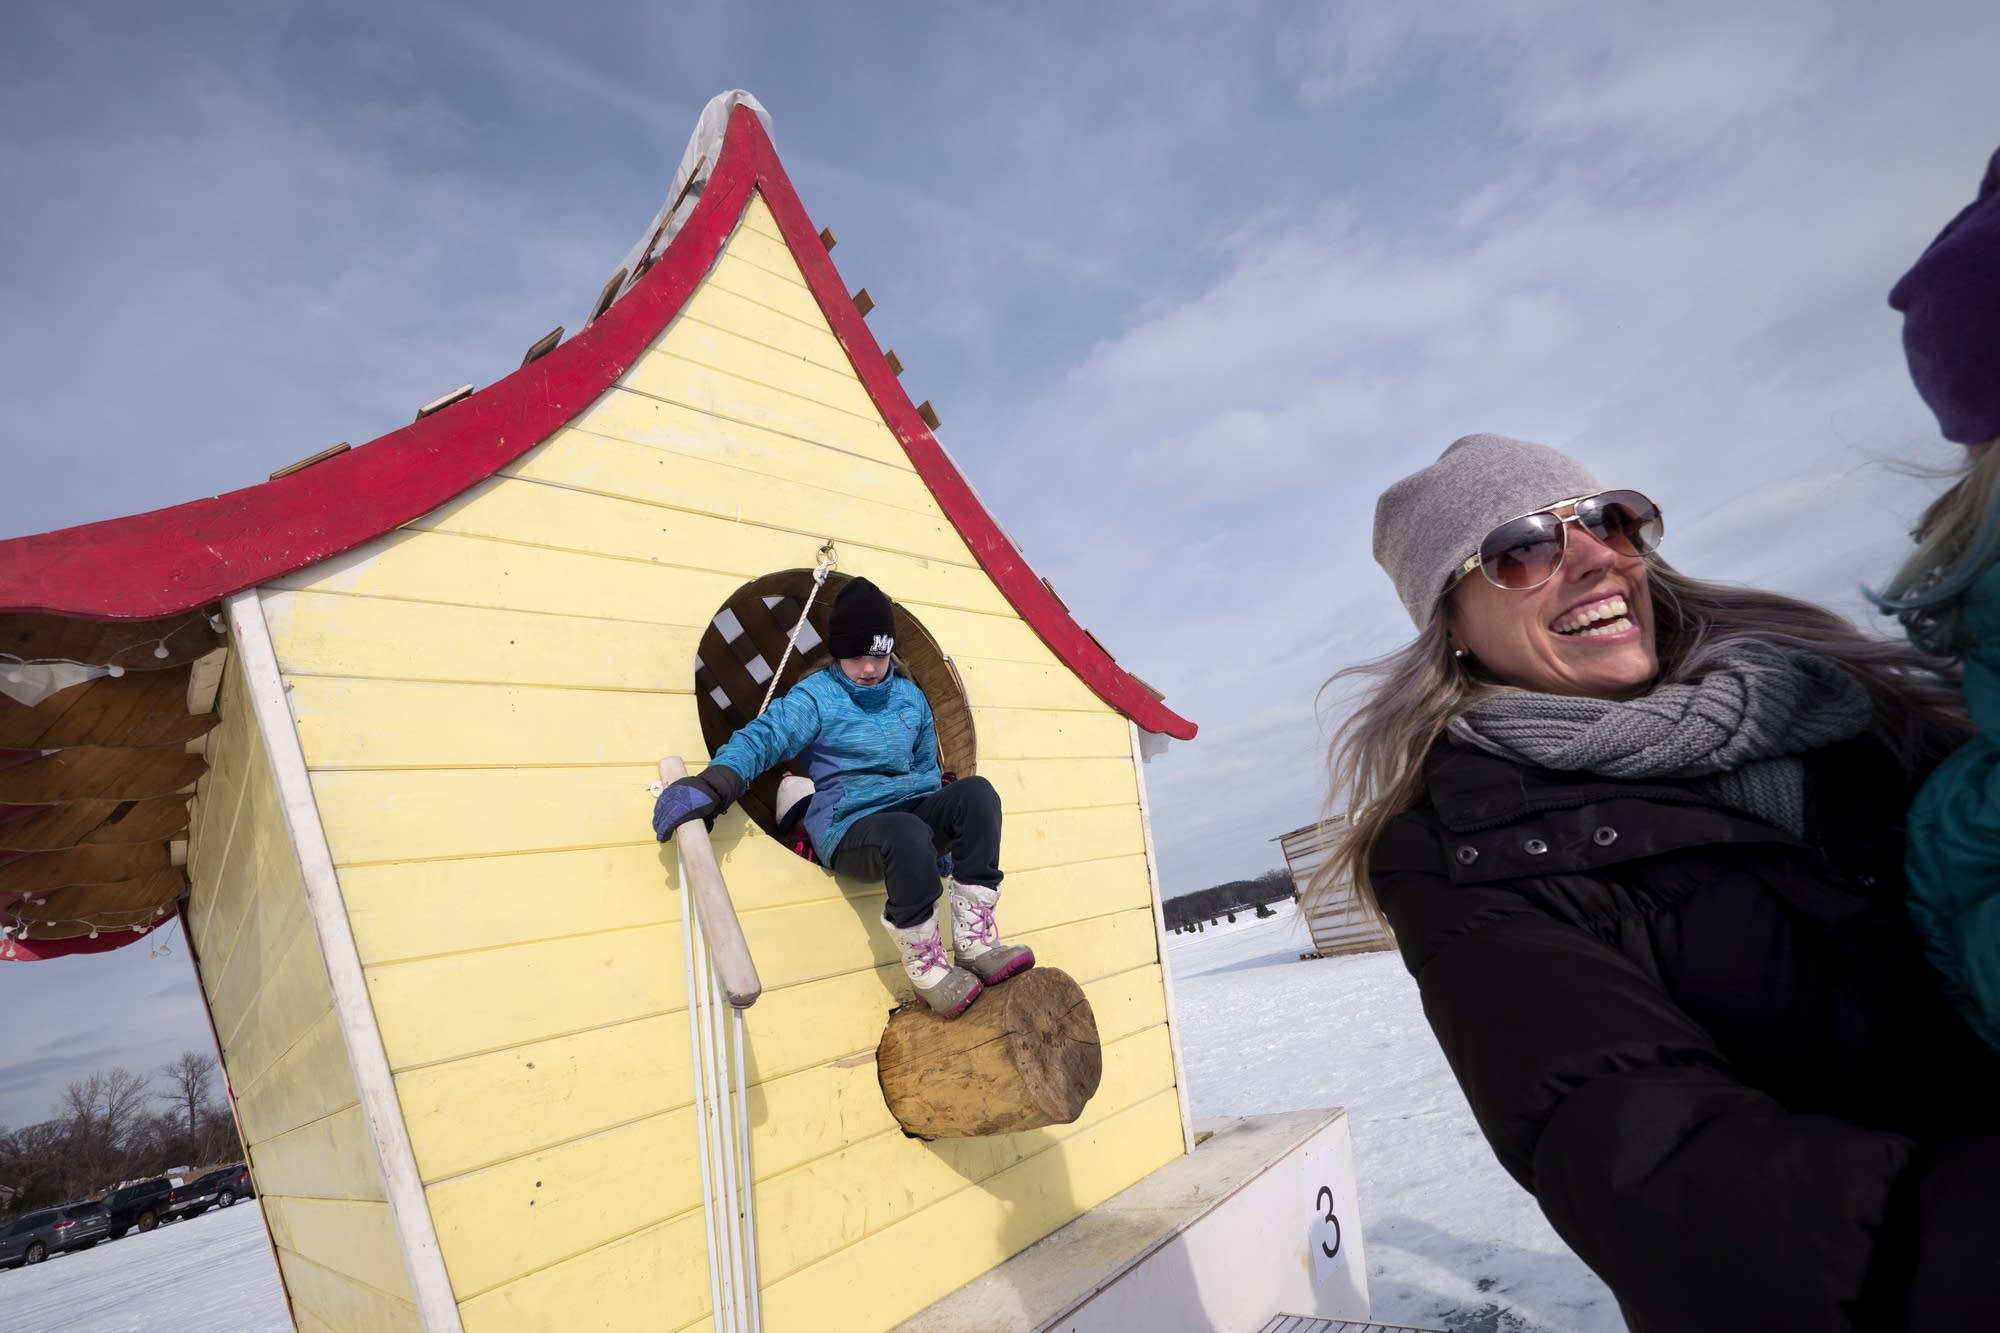 Annika Leafblad, 9, exits the Birdhouse of Arthur J. E. Wren.